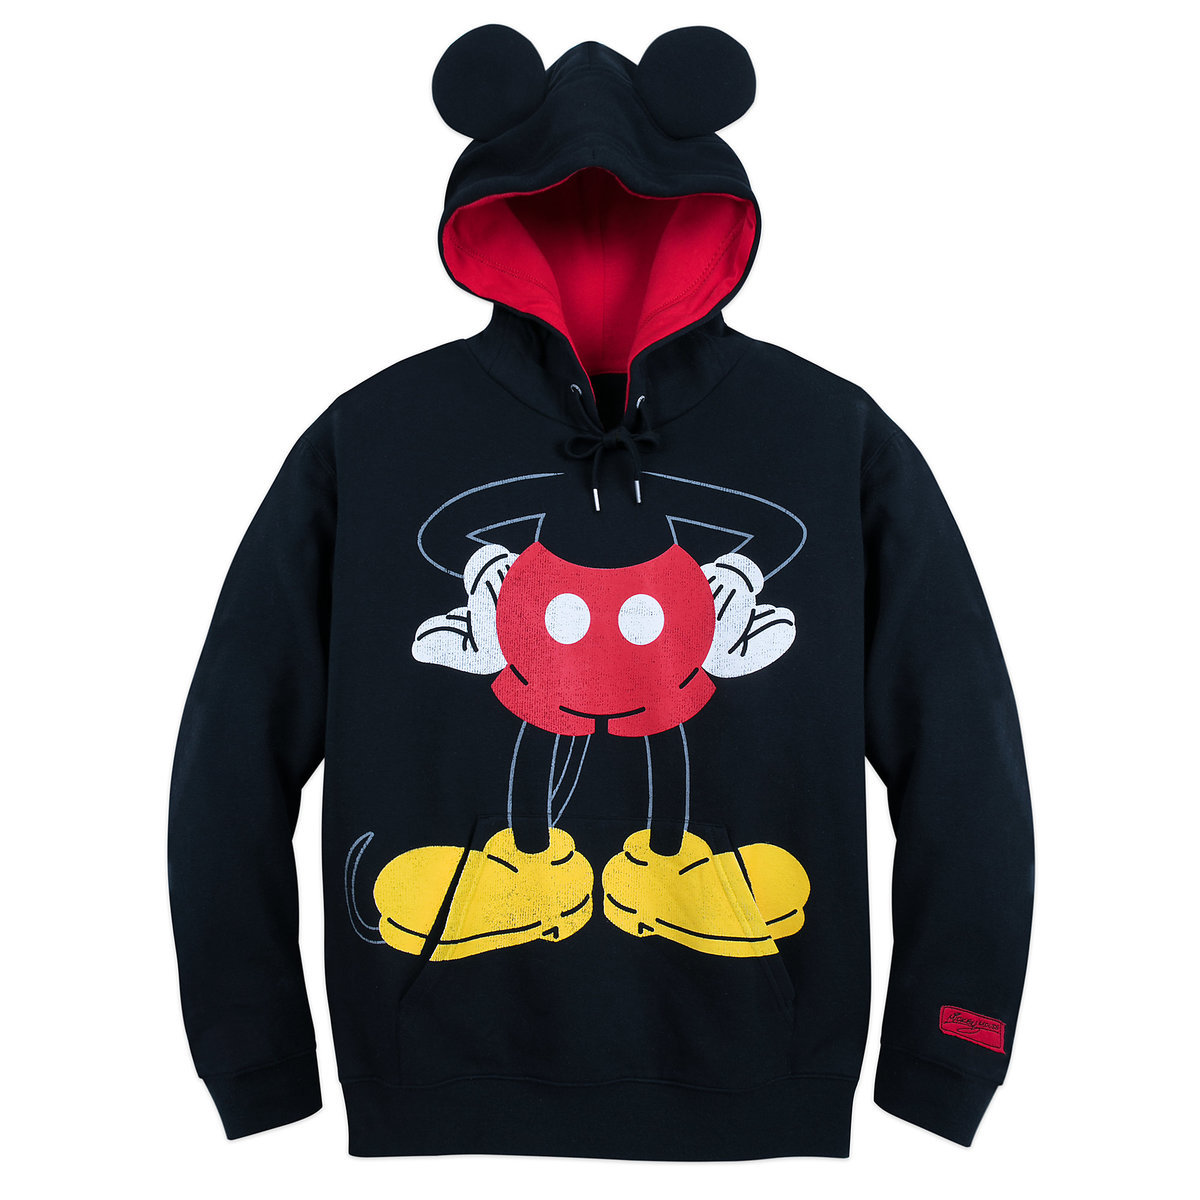 d703f65c Disney Men's Hoodie - I Am Mickey Mouse Pullover Hoodie. Tap to expand